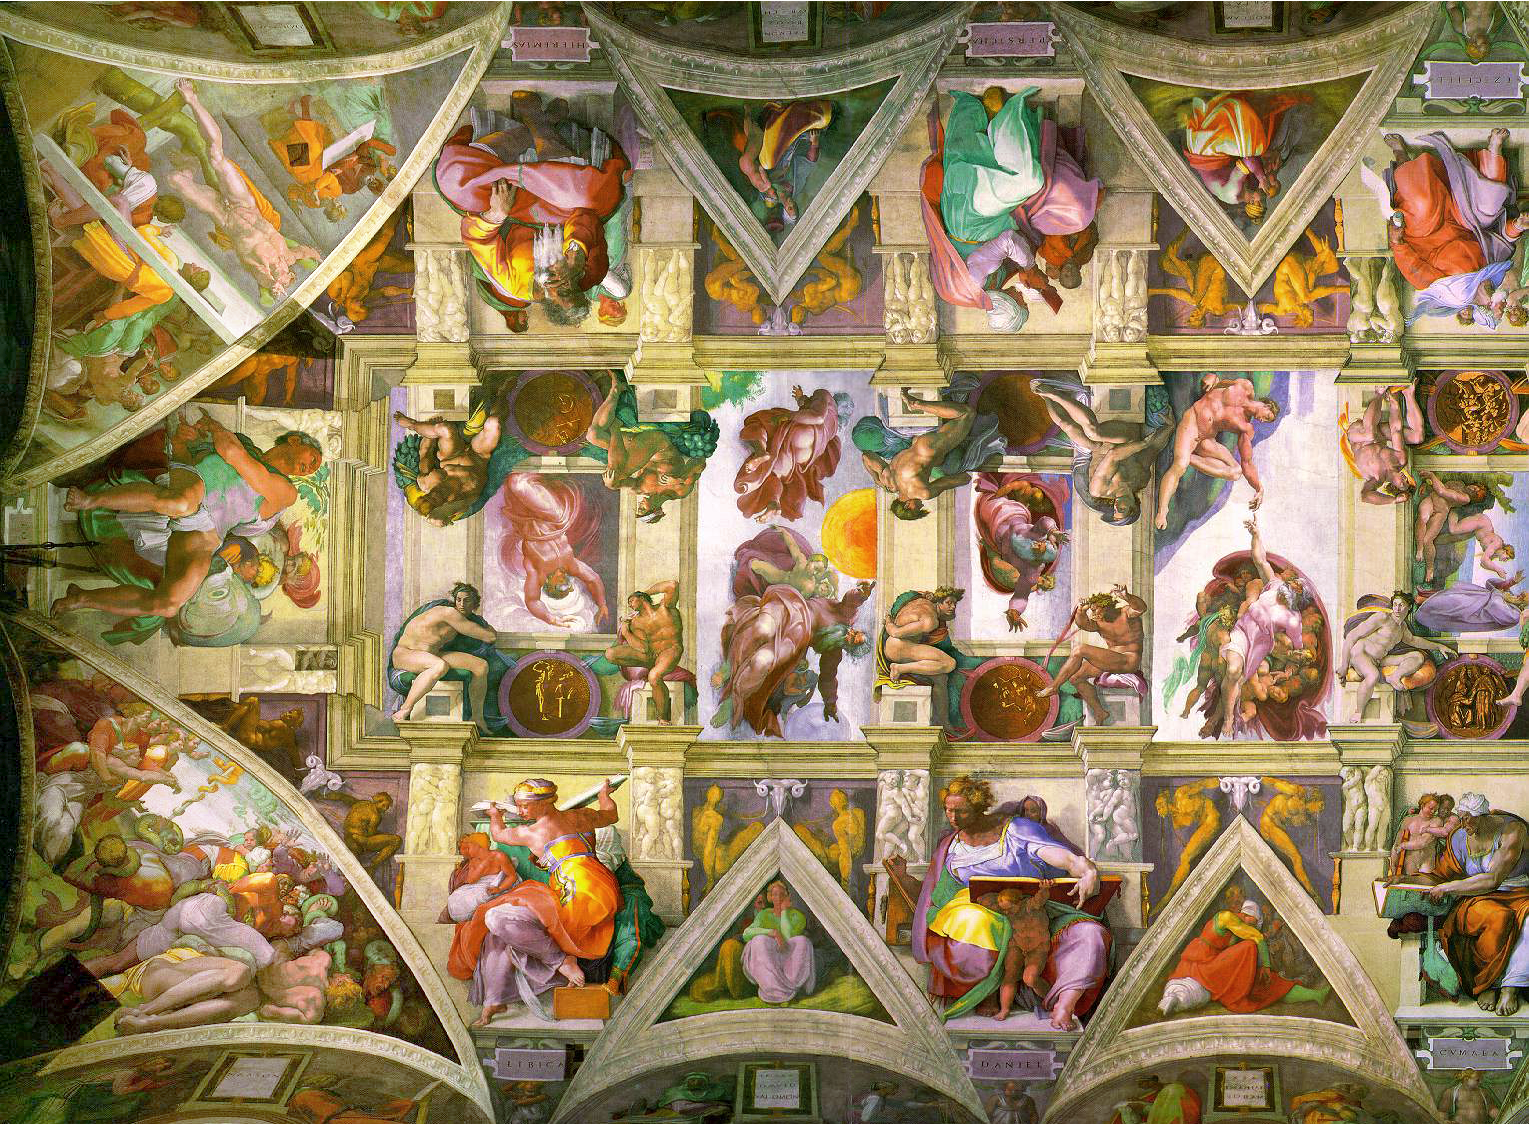 Free Photos Italy Rome Michelangelo S Artwork On The Ceiling Of Sistine Chapel